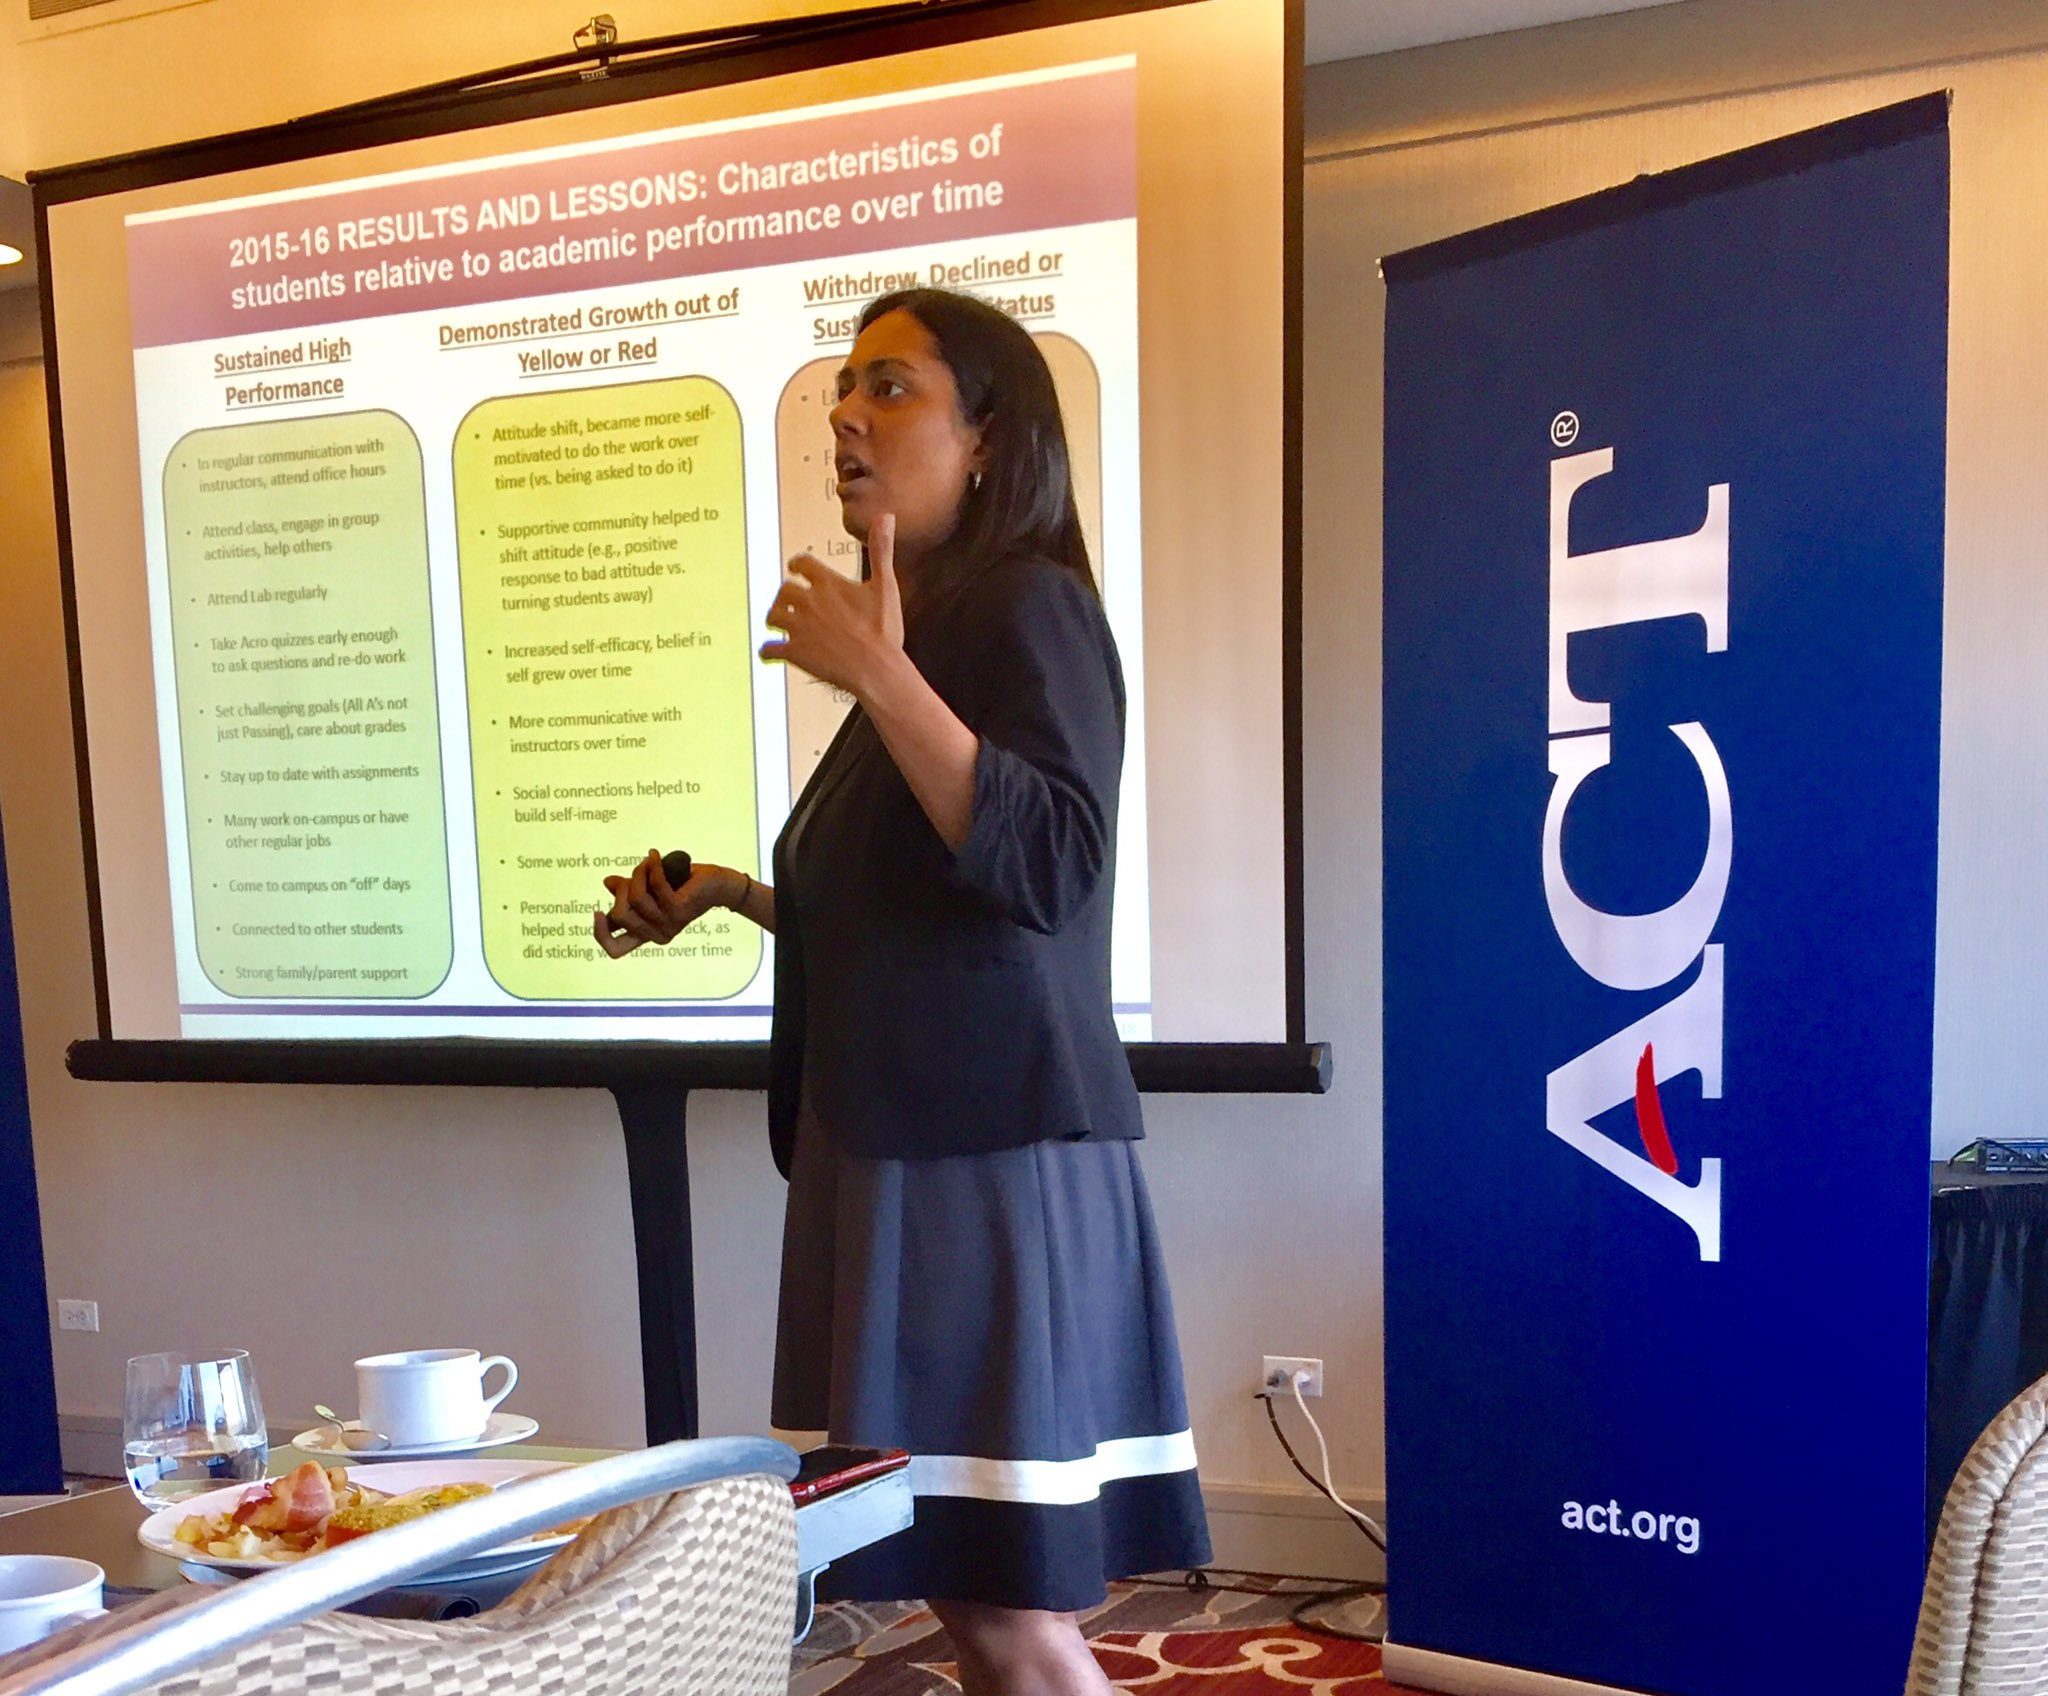 Aarti Dhupelia shares close the achievement gap and build a scalable model for educational transformation #ACTProfdev, #ACTEquity https://t.co/8N85tG0FOE